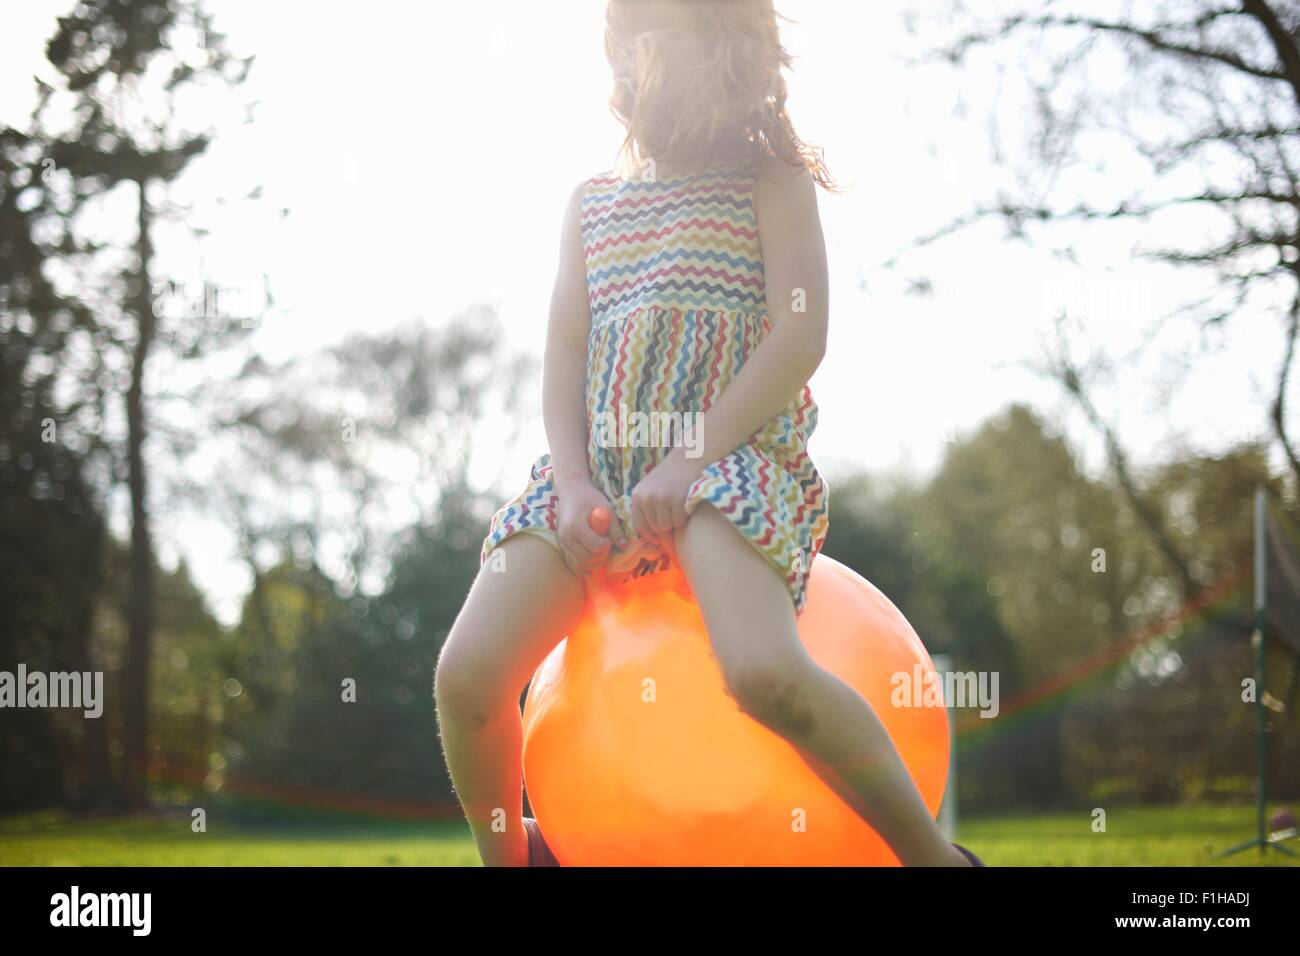 Young girl bouncing on inflatable hopper - Stock Image